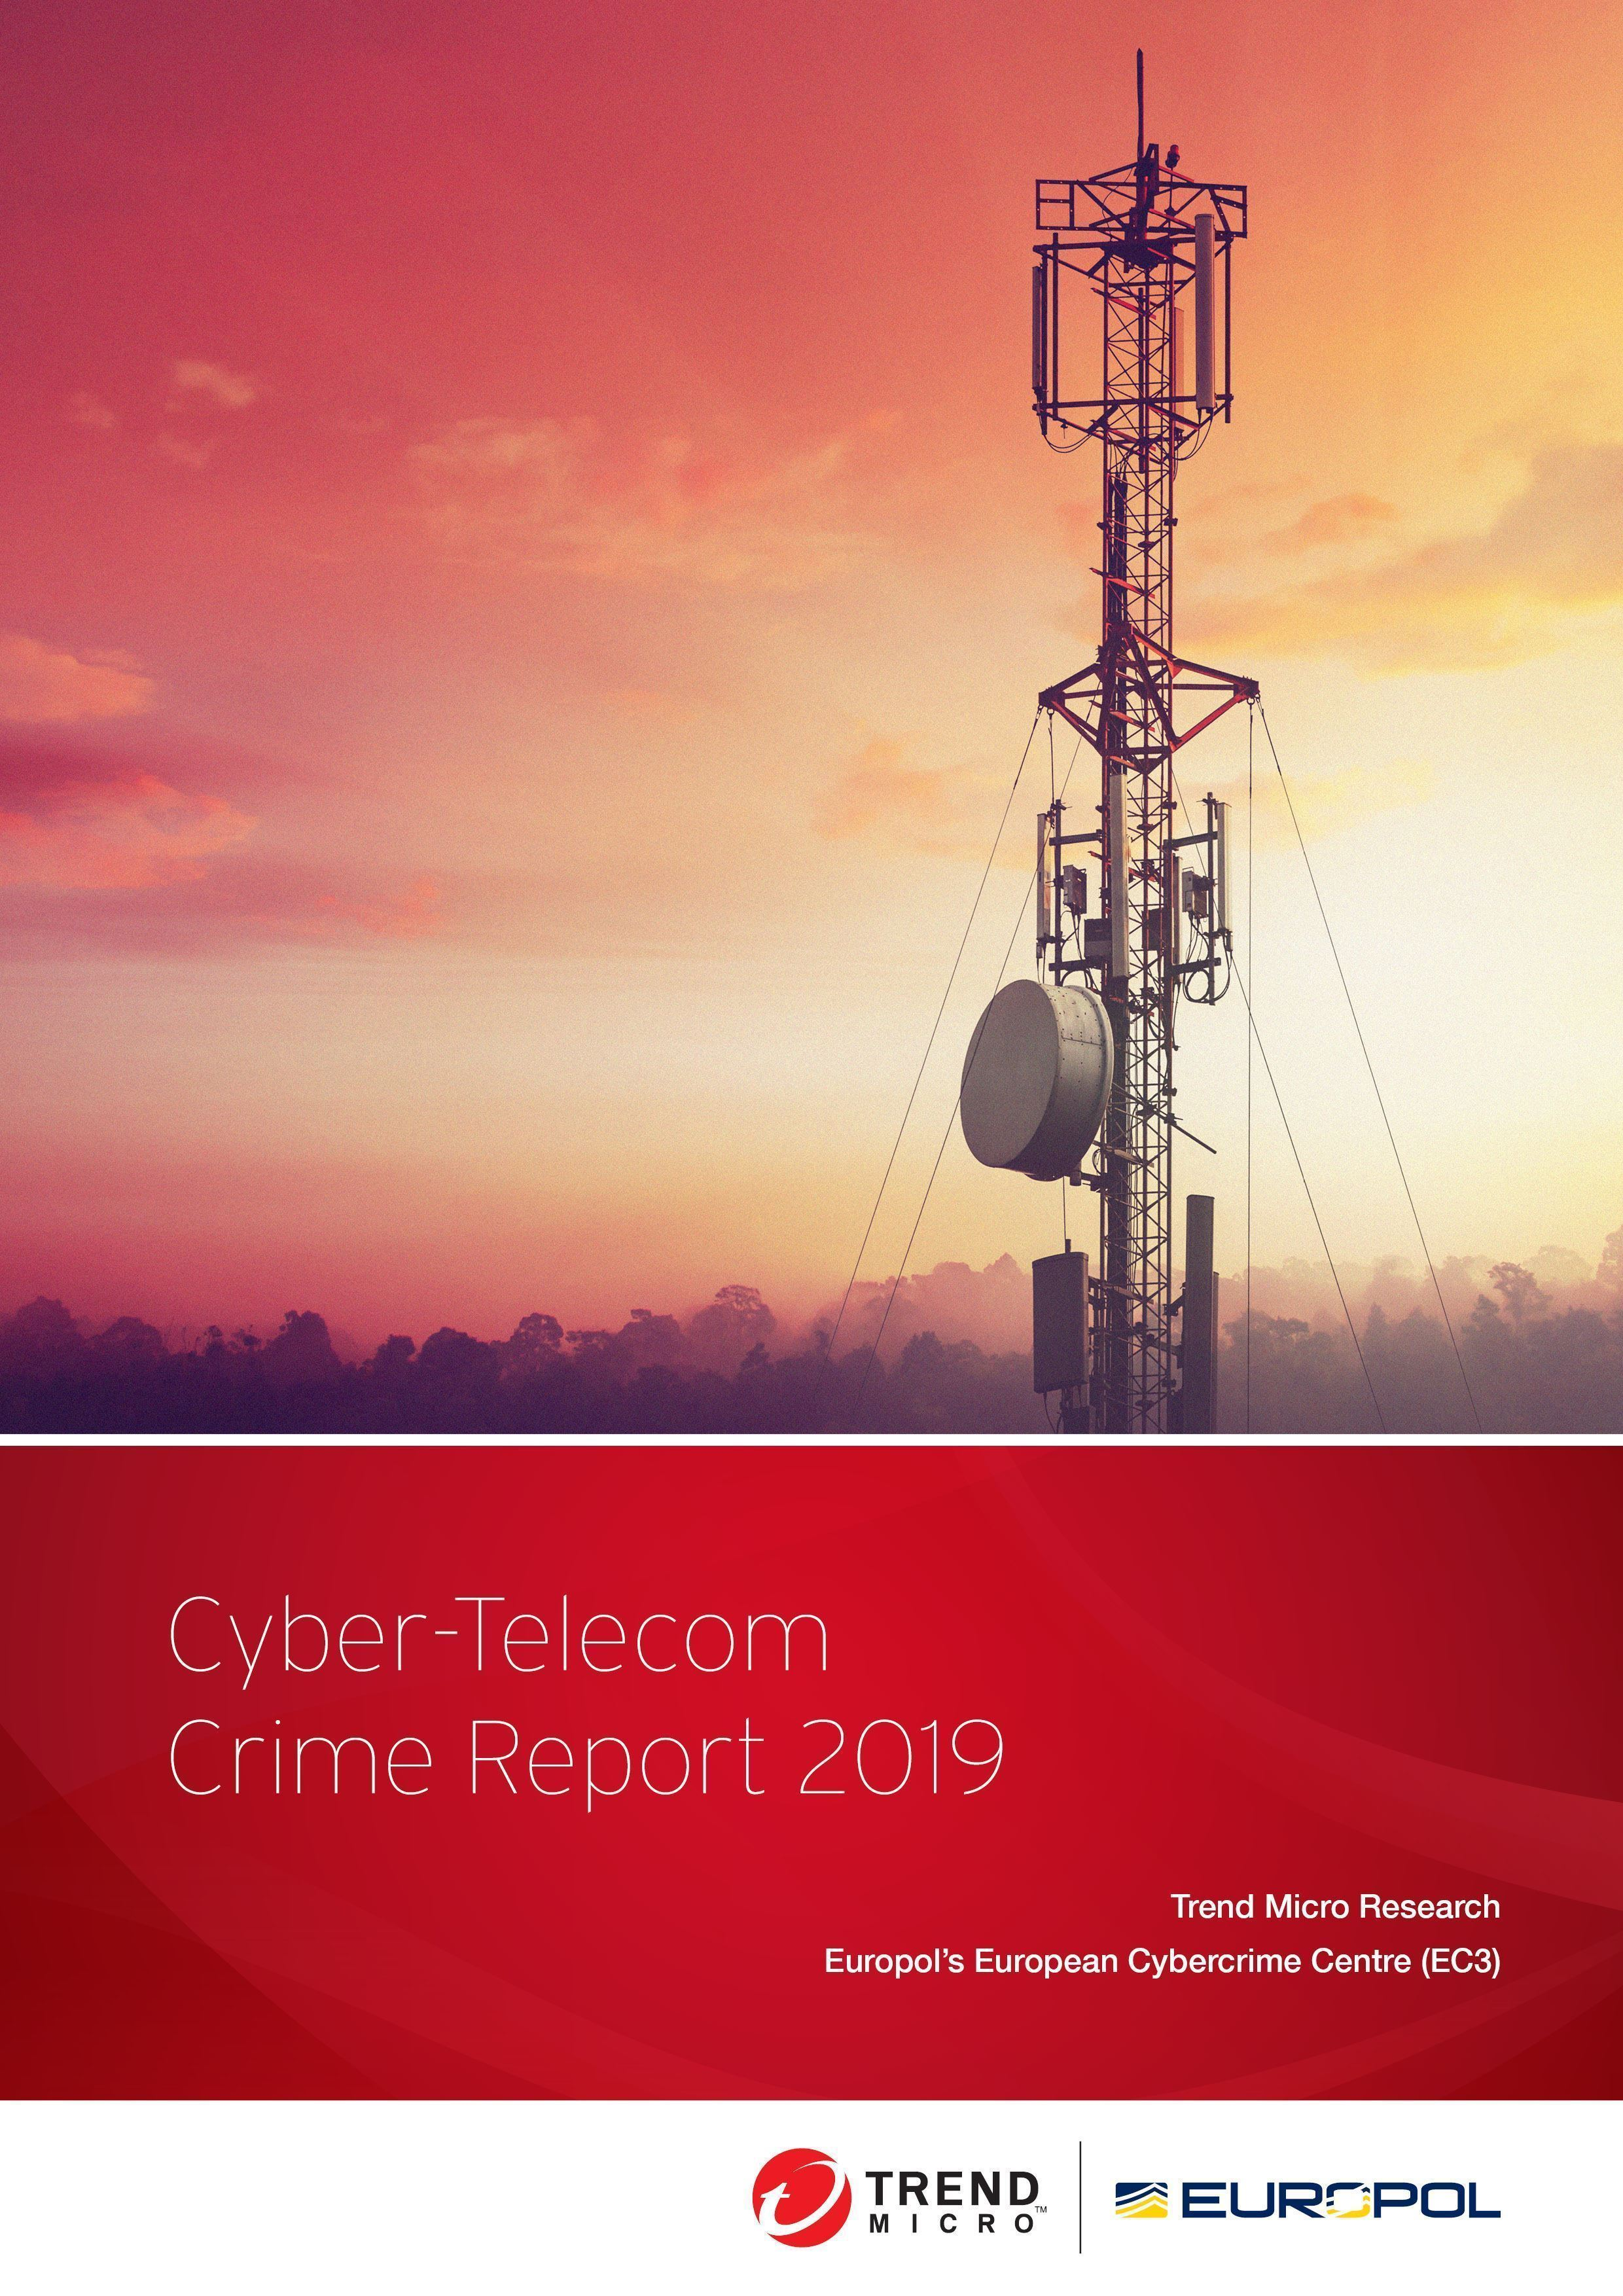 Global Telecom Crime Undermining Internet Security: Cyber